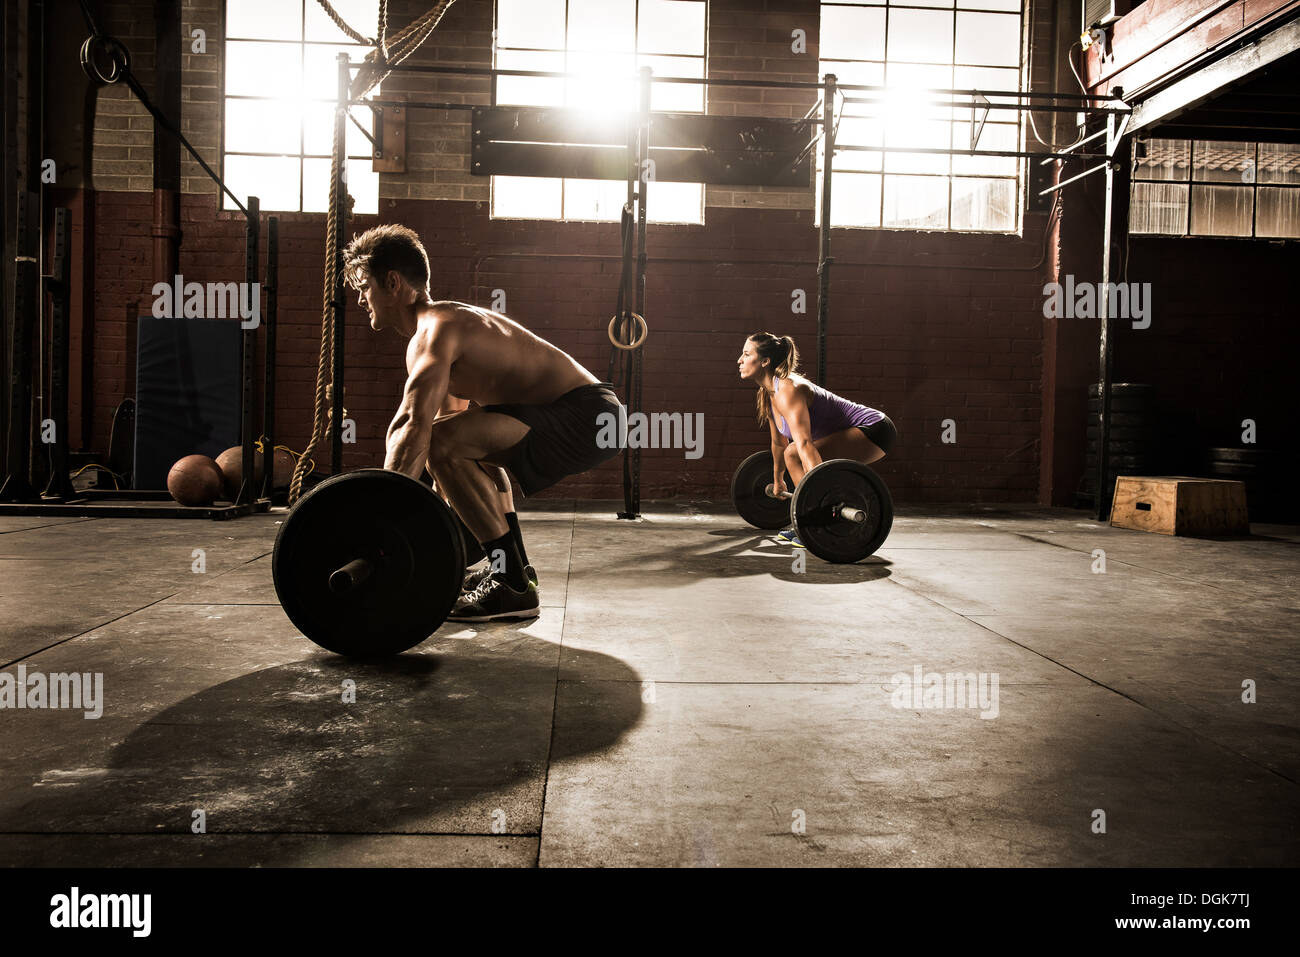 Two young adults working out with barbells in gym - Stock Image